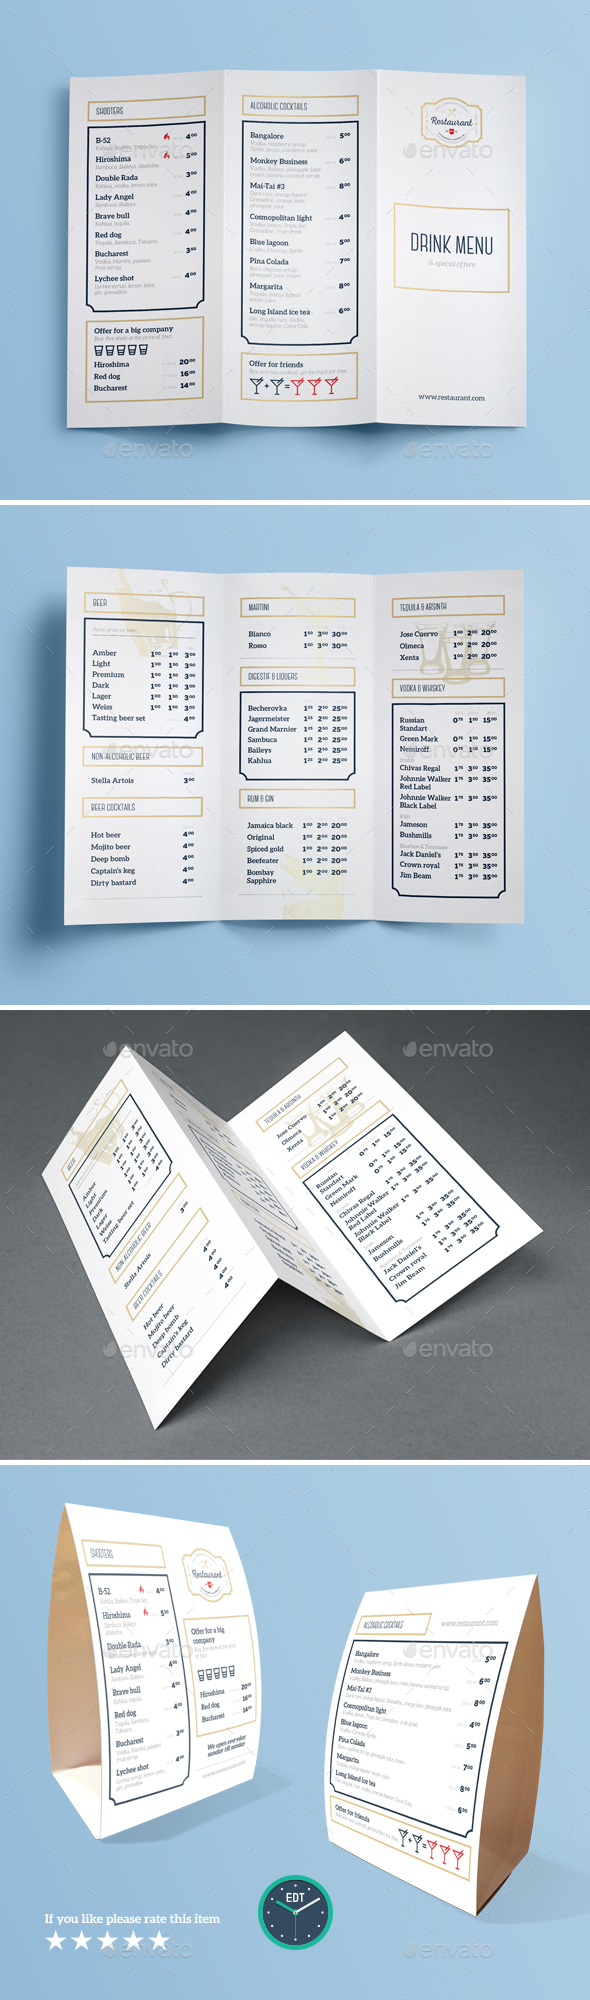 Drink Menu Templates - Food Menus Print Templates